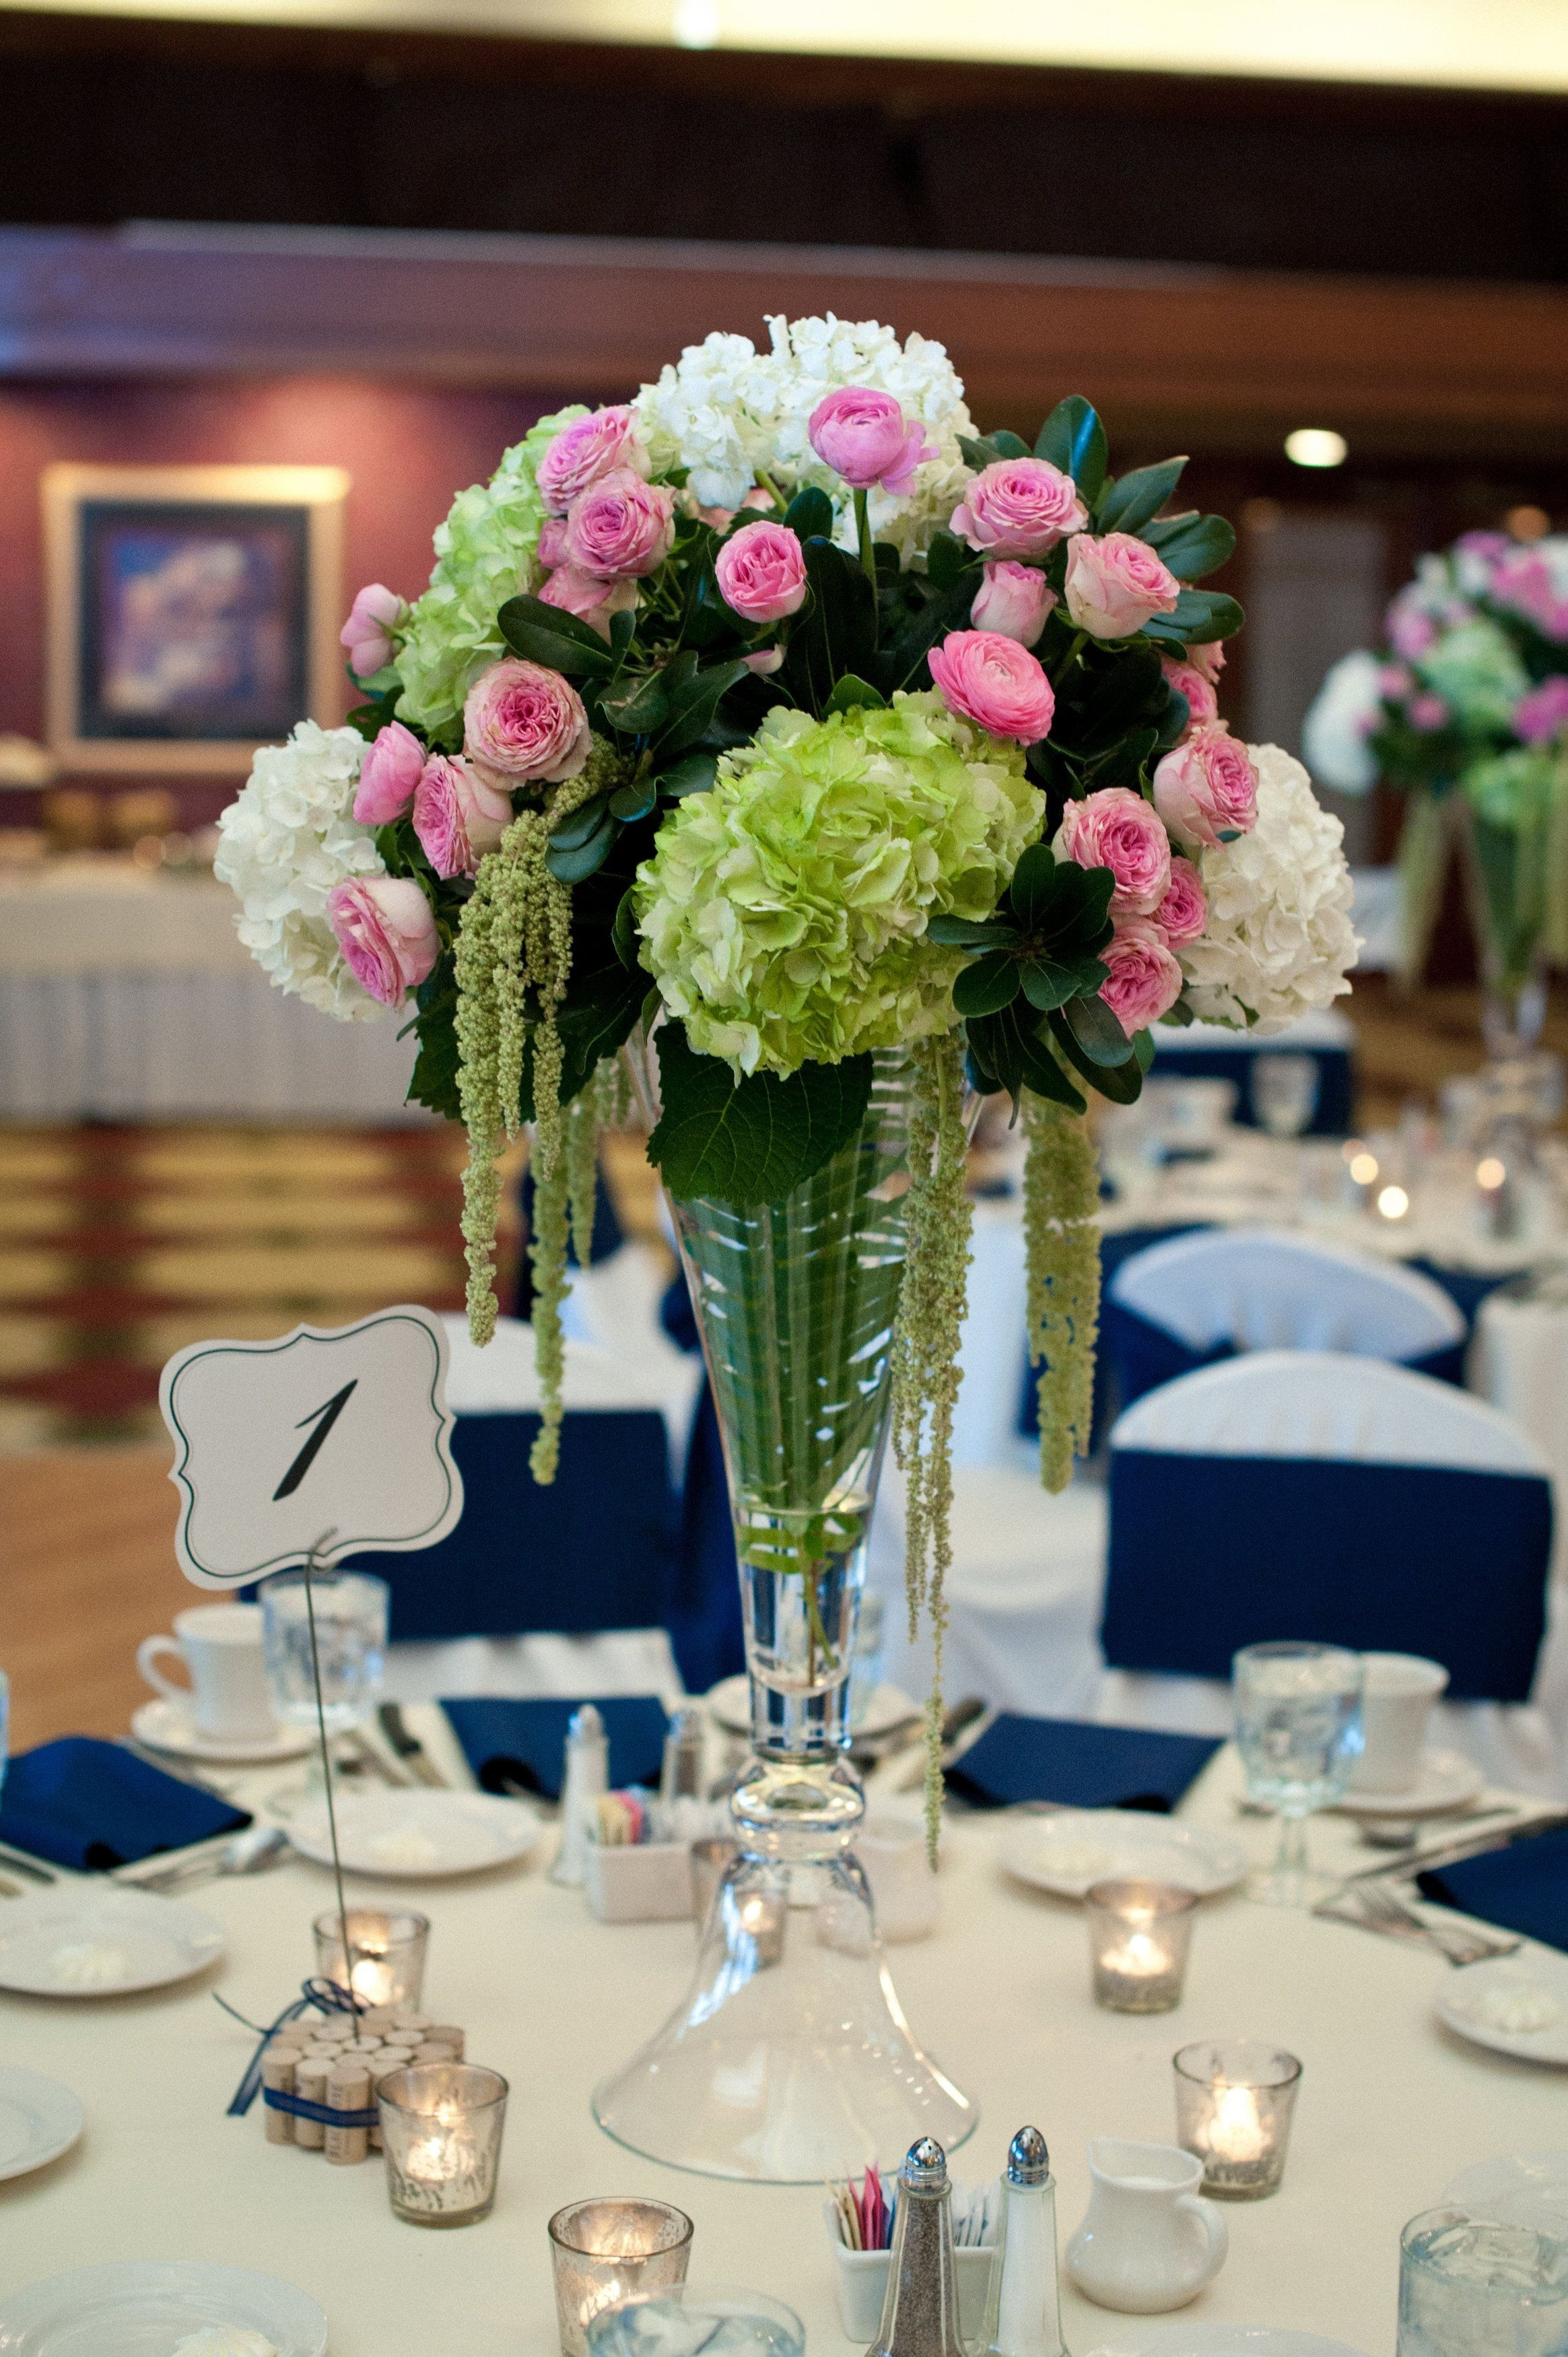 flowers in white vase of hydrangea decorations wedding unique cool wedding ideas as for h with regard to hydrangea decorations wedding elegant tall wedding centerpieces green hydrangea pink garden roses white of hydrangea decorations